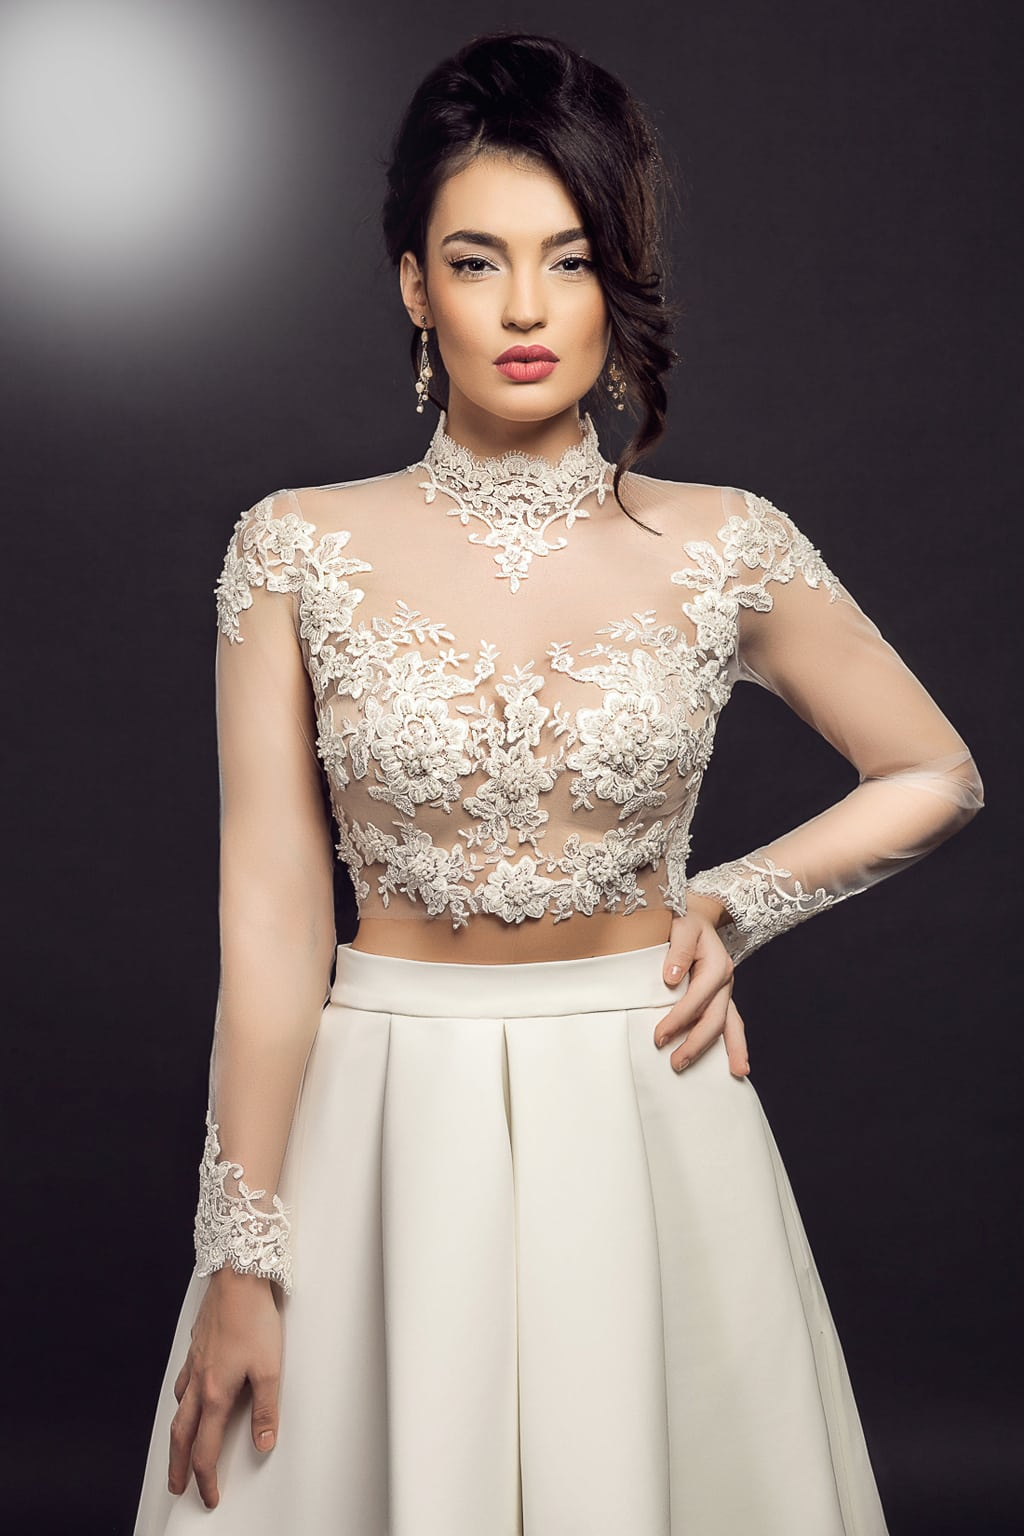 Patima Model - Colectia Dreams - Adora Sposa (2)